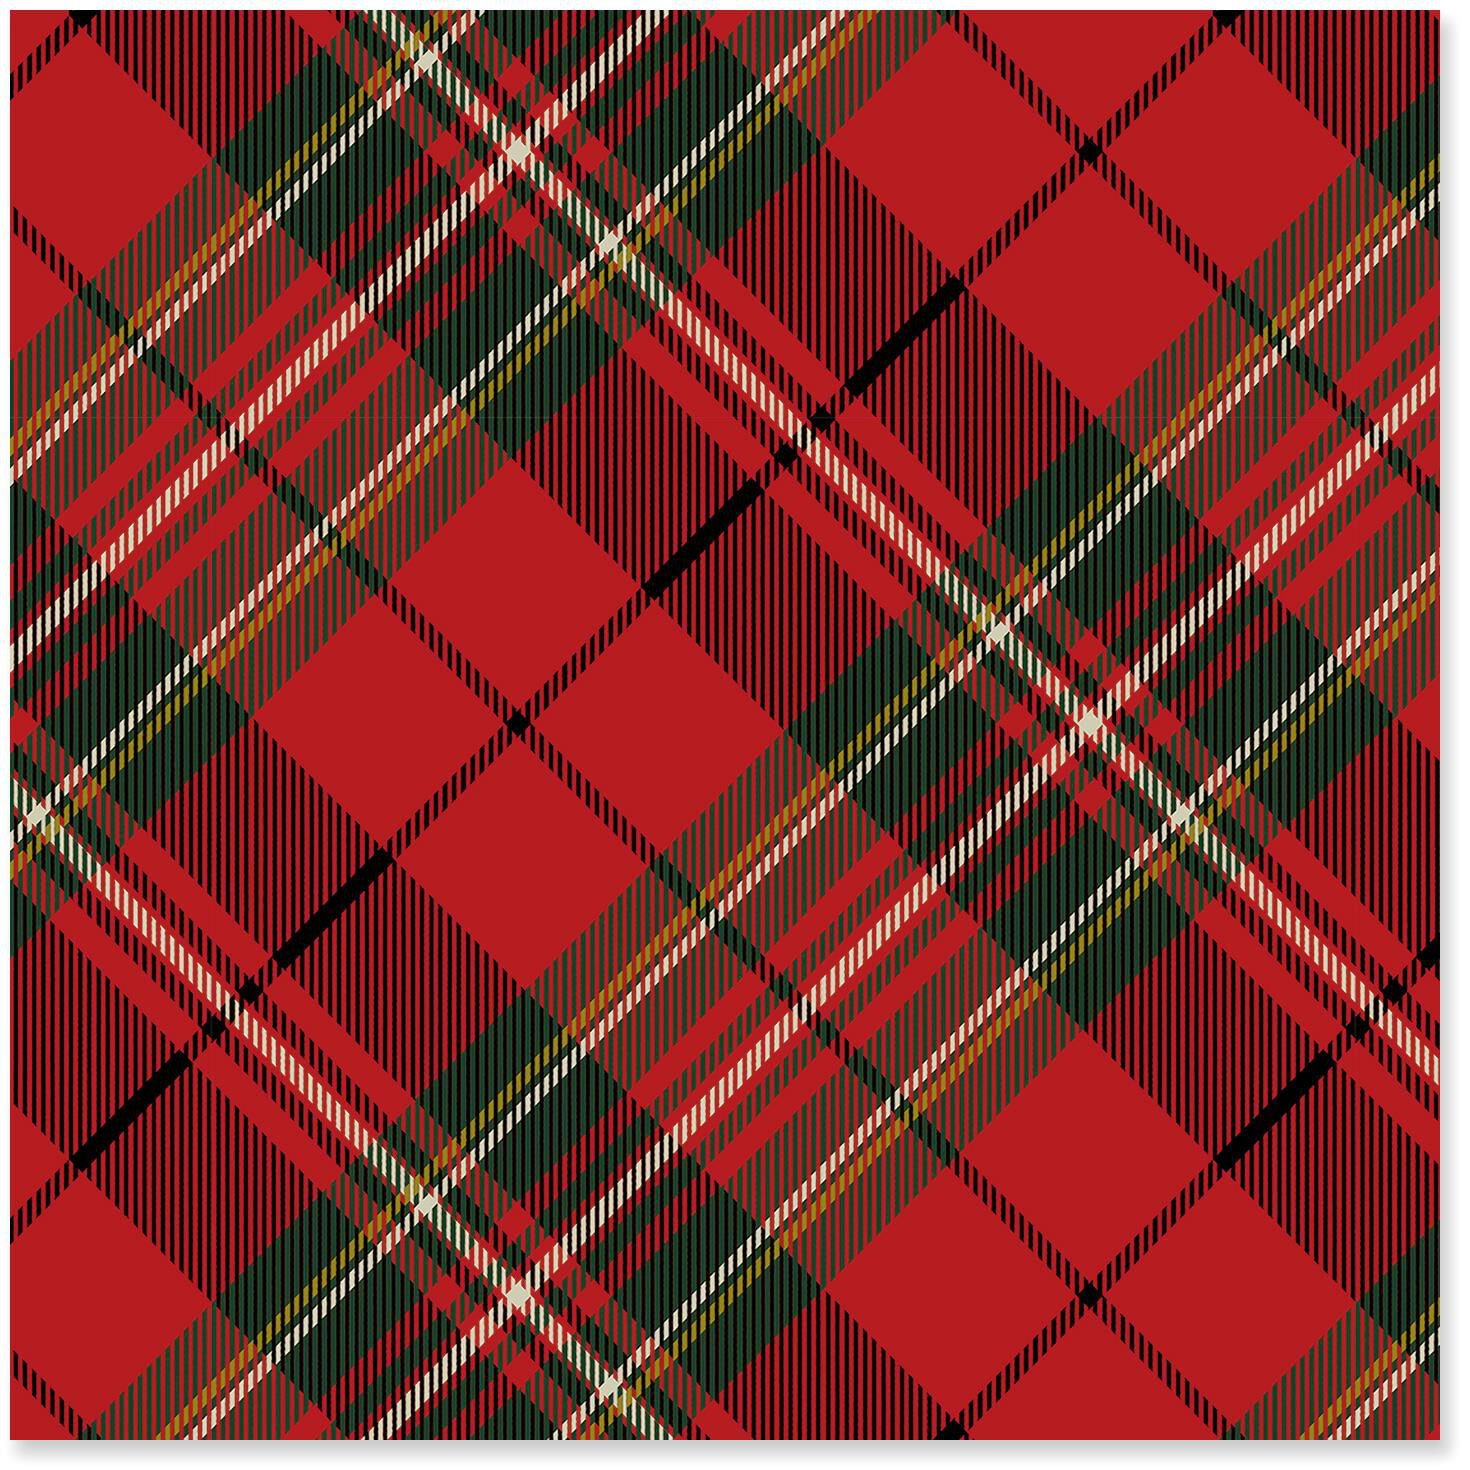 red plaid christmas wrapping paper roll, 45 sq ft wrapping paperred plaid christmas wrapping paper roll, 45 sq ft wrapping paper hallmark